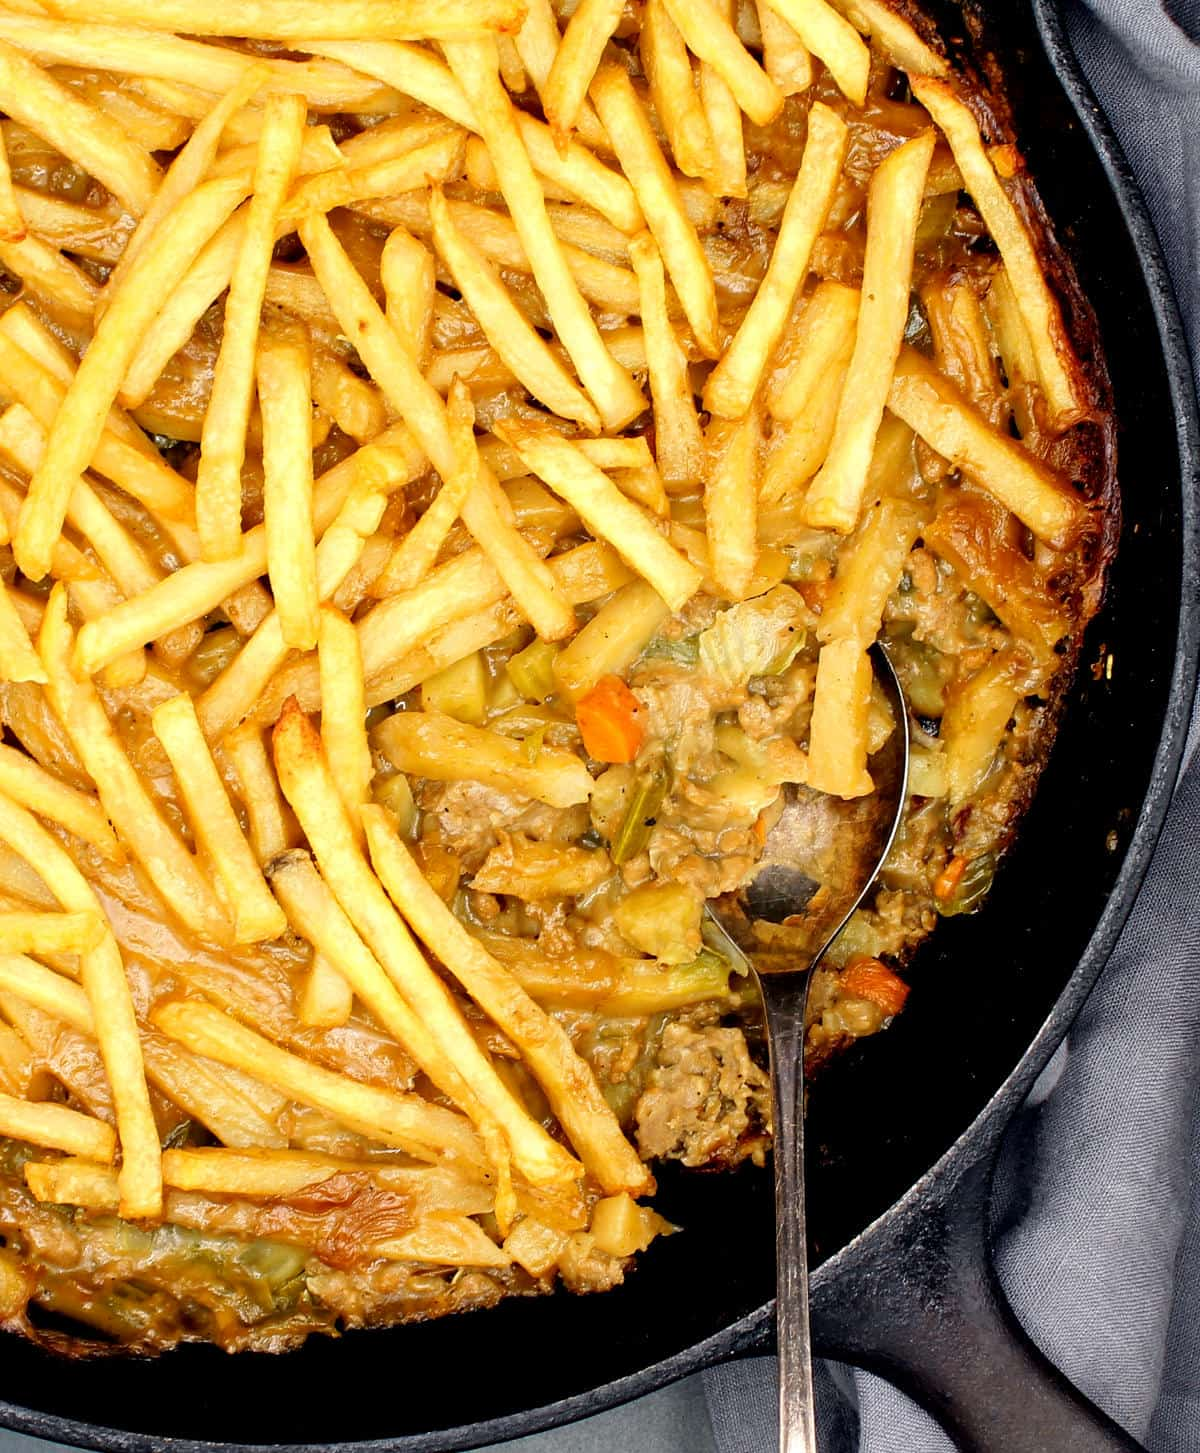 Closeup photo of crispy golden French fries layered over a creamy filling of vegetables and vegan meat in a cast iron skillet.